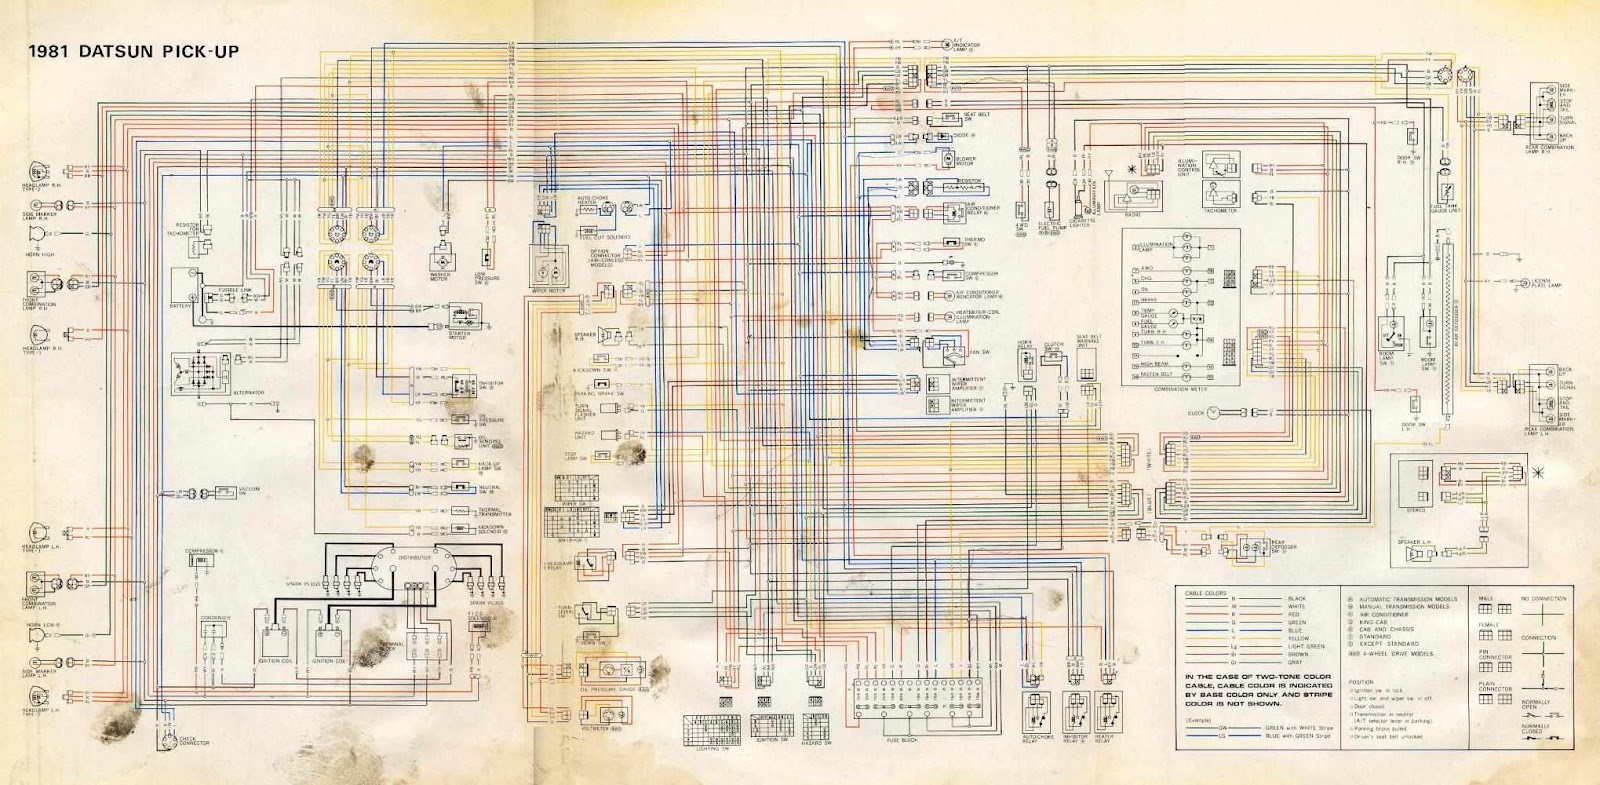 1982 Mustang Wiring Diagram Complete | Wiring Library